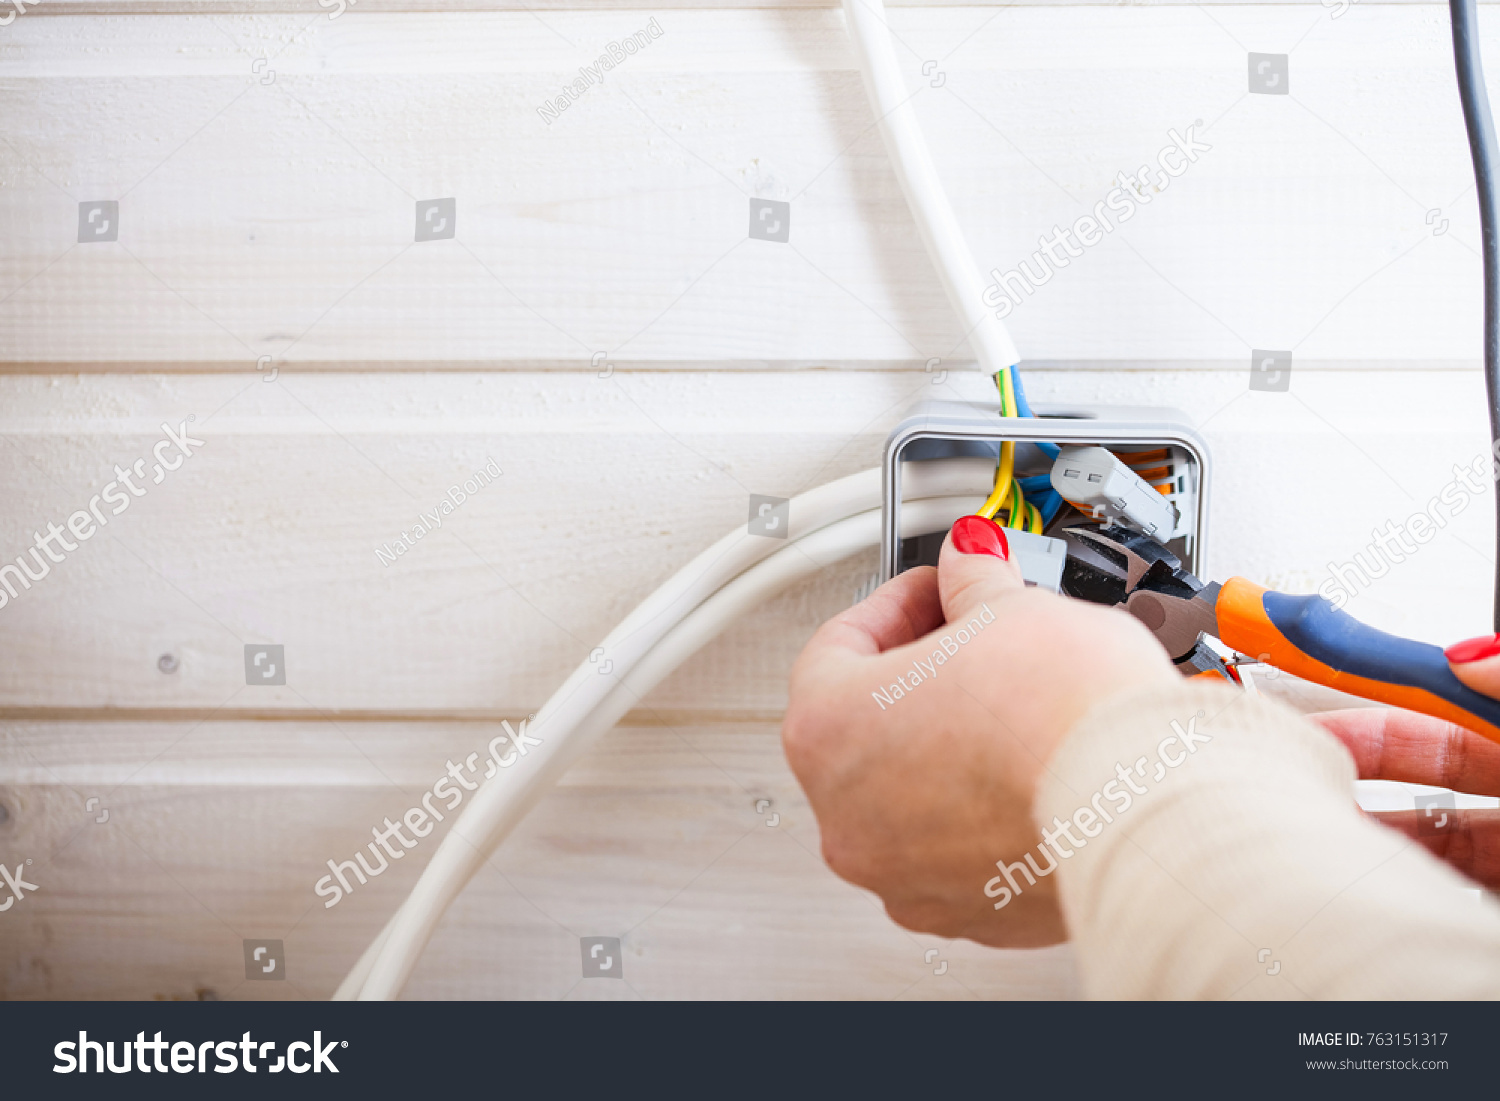 Connection Wires Plug House Repair Female Stock Photo Edit Now Wiring A Of In The Hands Electric